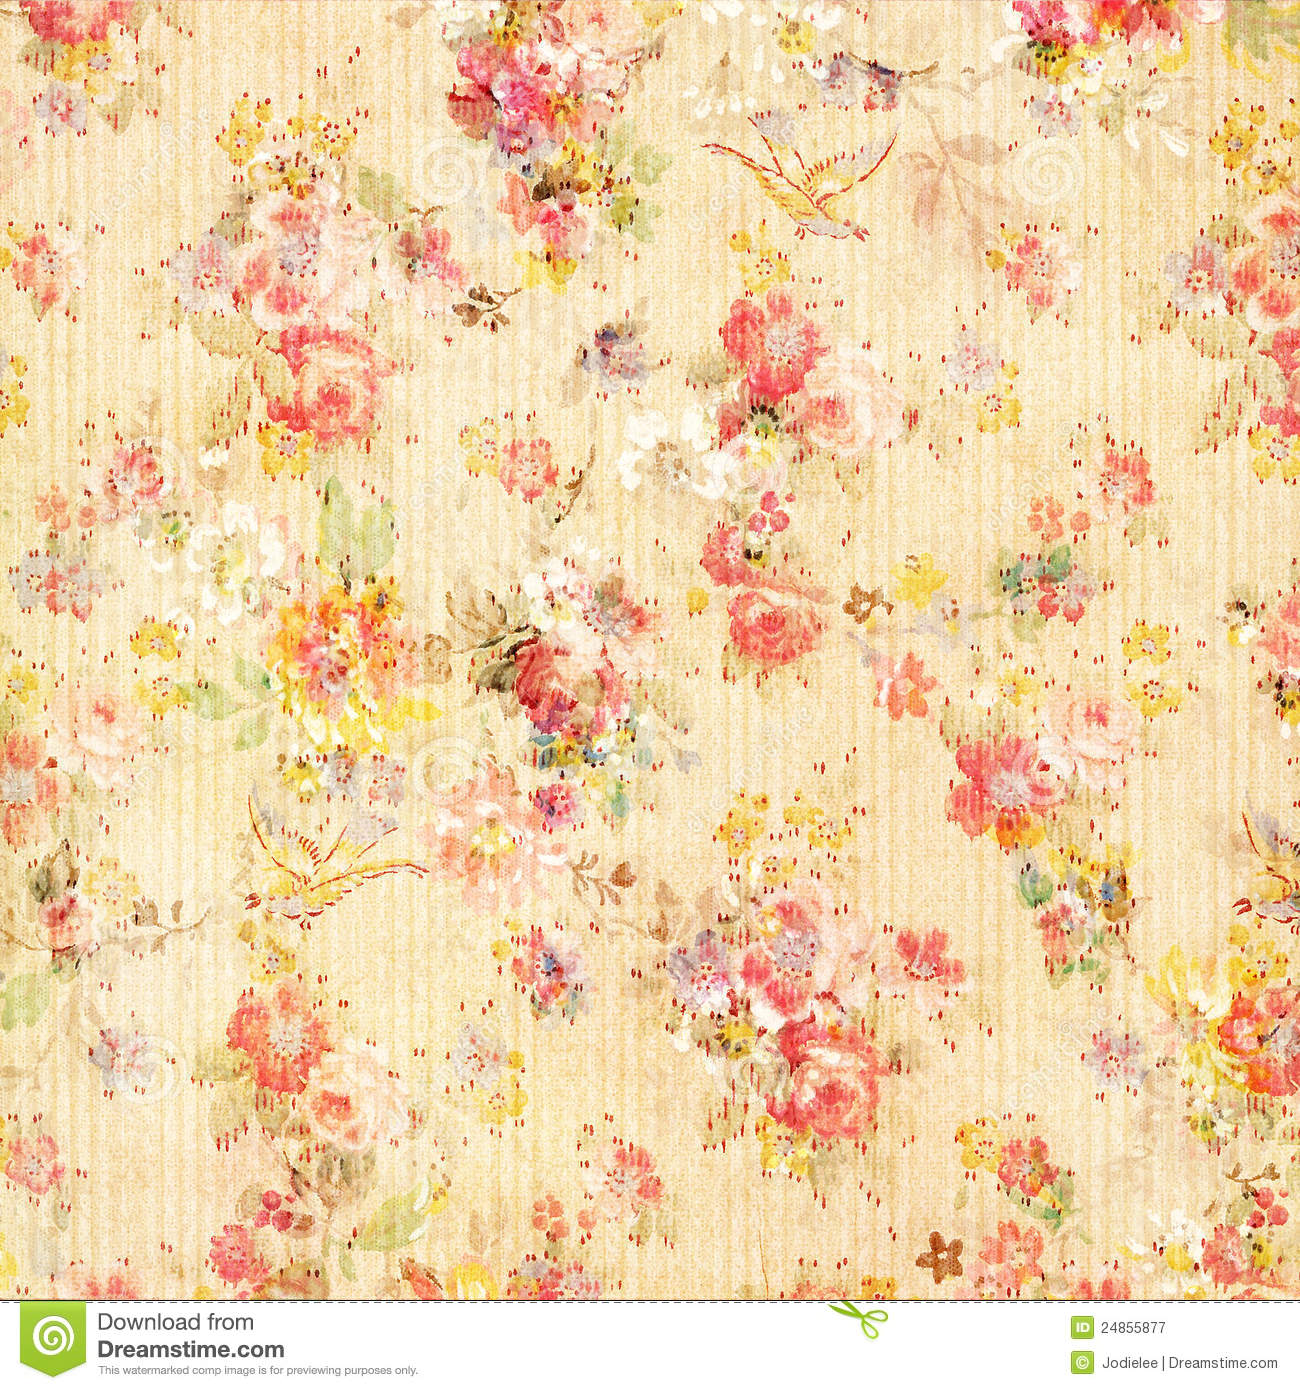 Free Download Yellow Shabby Chic Vintage Floral Wallpaper